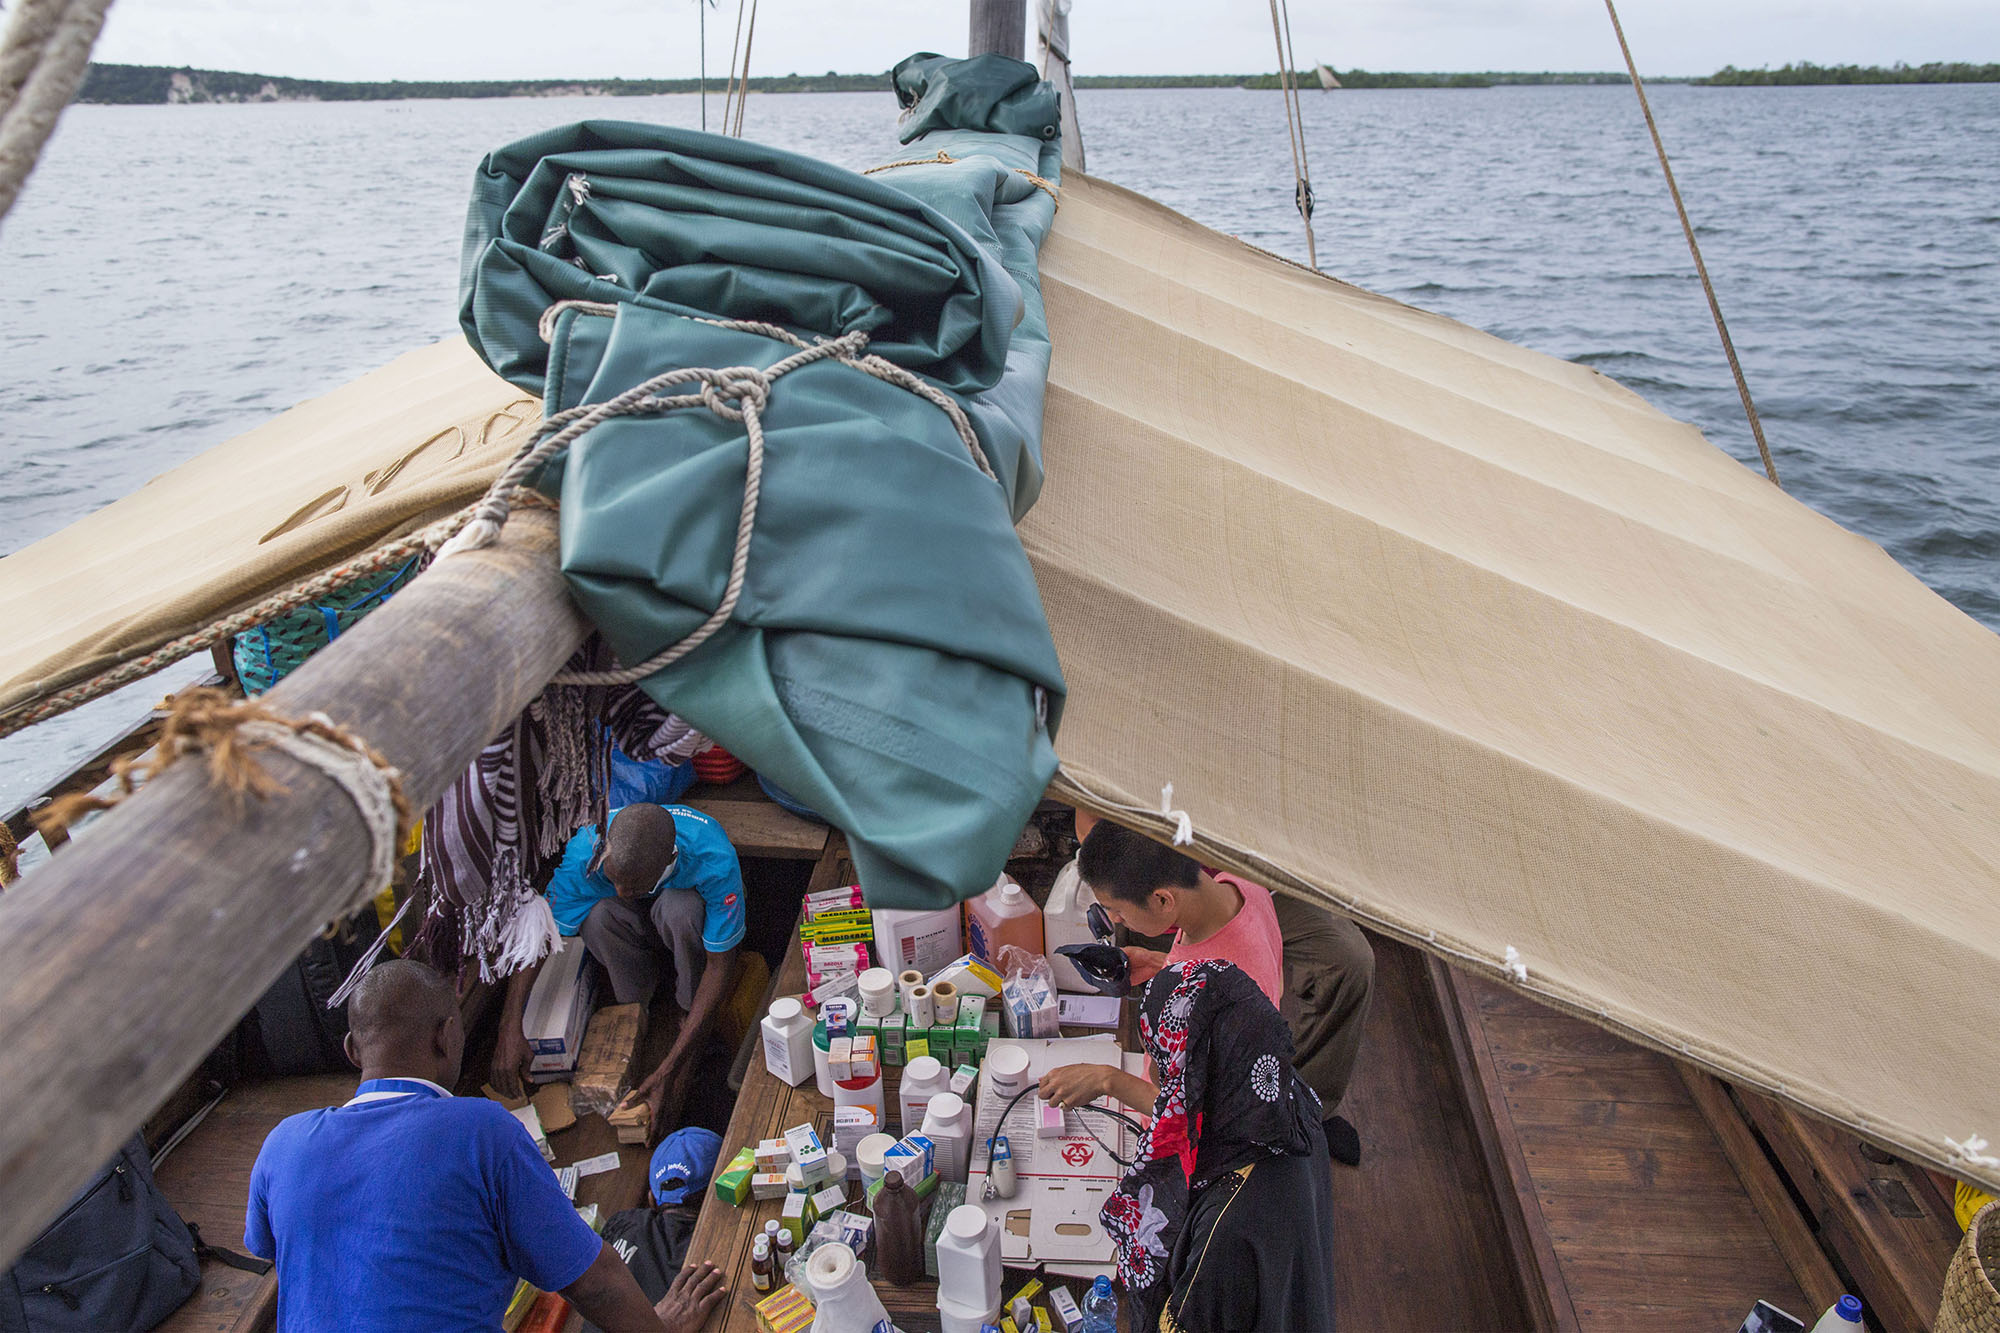 The-journeys-by-sea-are-long-and-the-medical-team-take-time-to-prepair-all-the-supplies